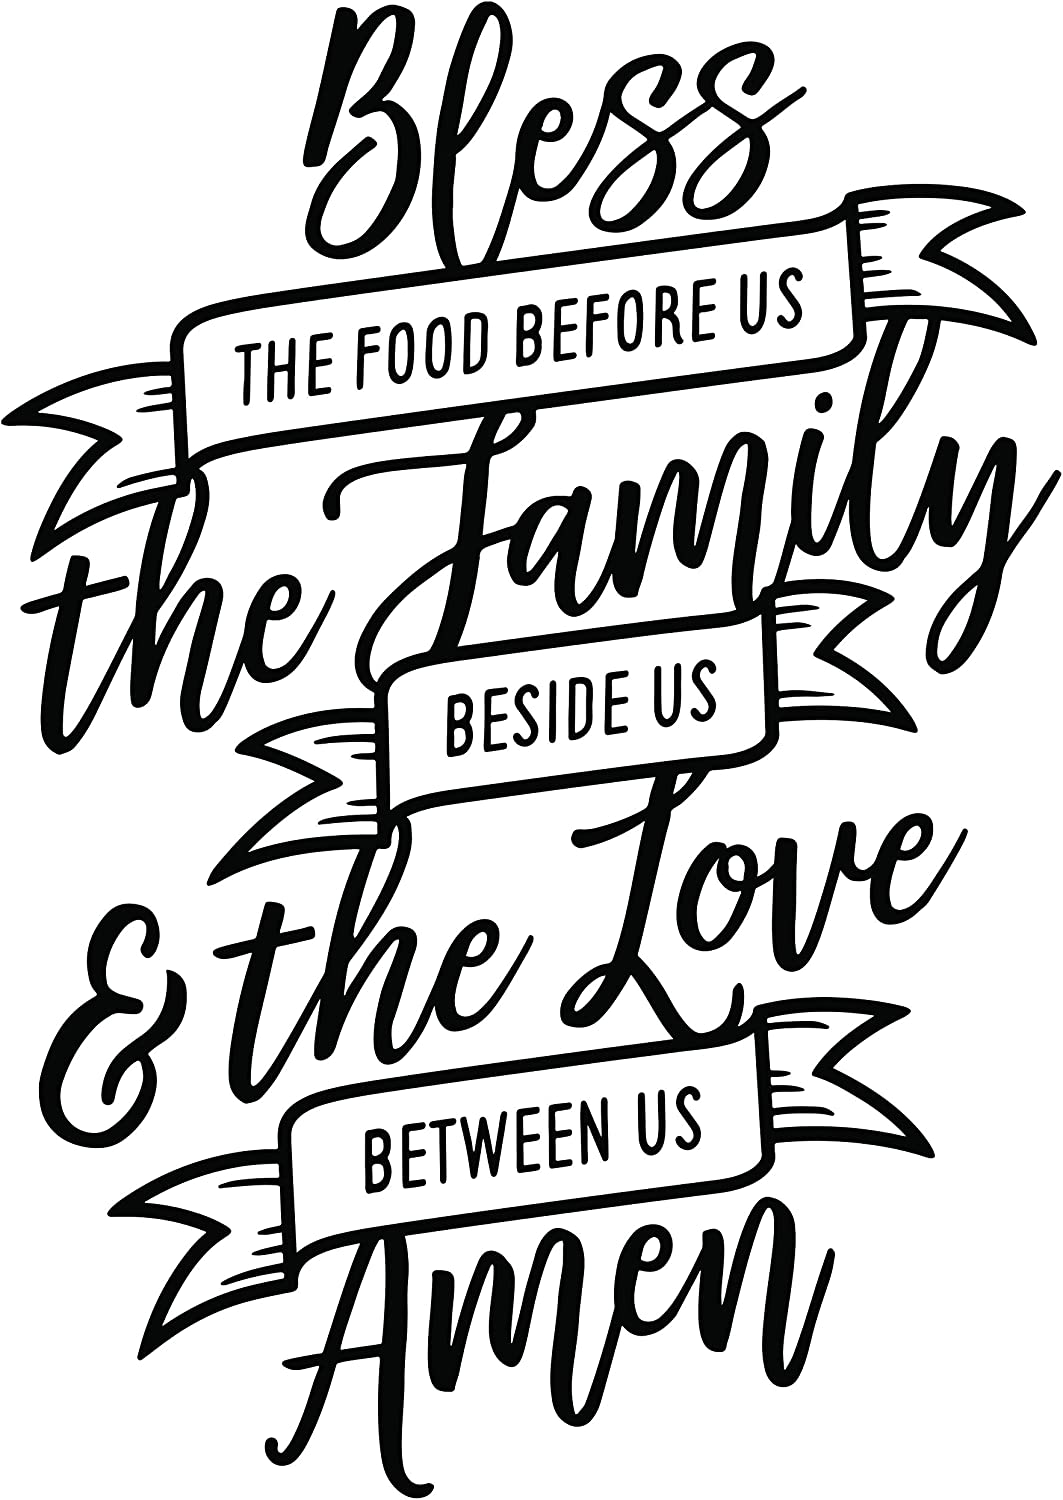 Bless The Food Before Us Sign (21x14 in) | Kitchen Wall Decals, Kitchen Wall Stickers, Wall Sayings Decals, Kitchen Stickers Wall Decor, Dining Room Decor for Wall, Home Wall Decals - SylkyClover